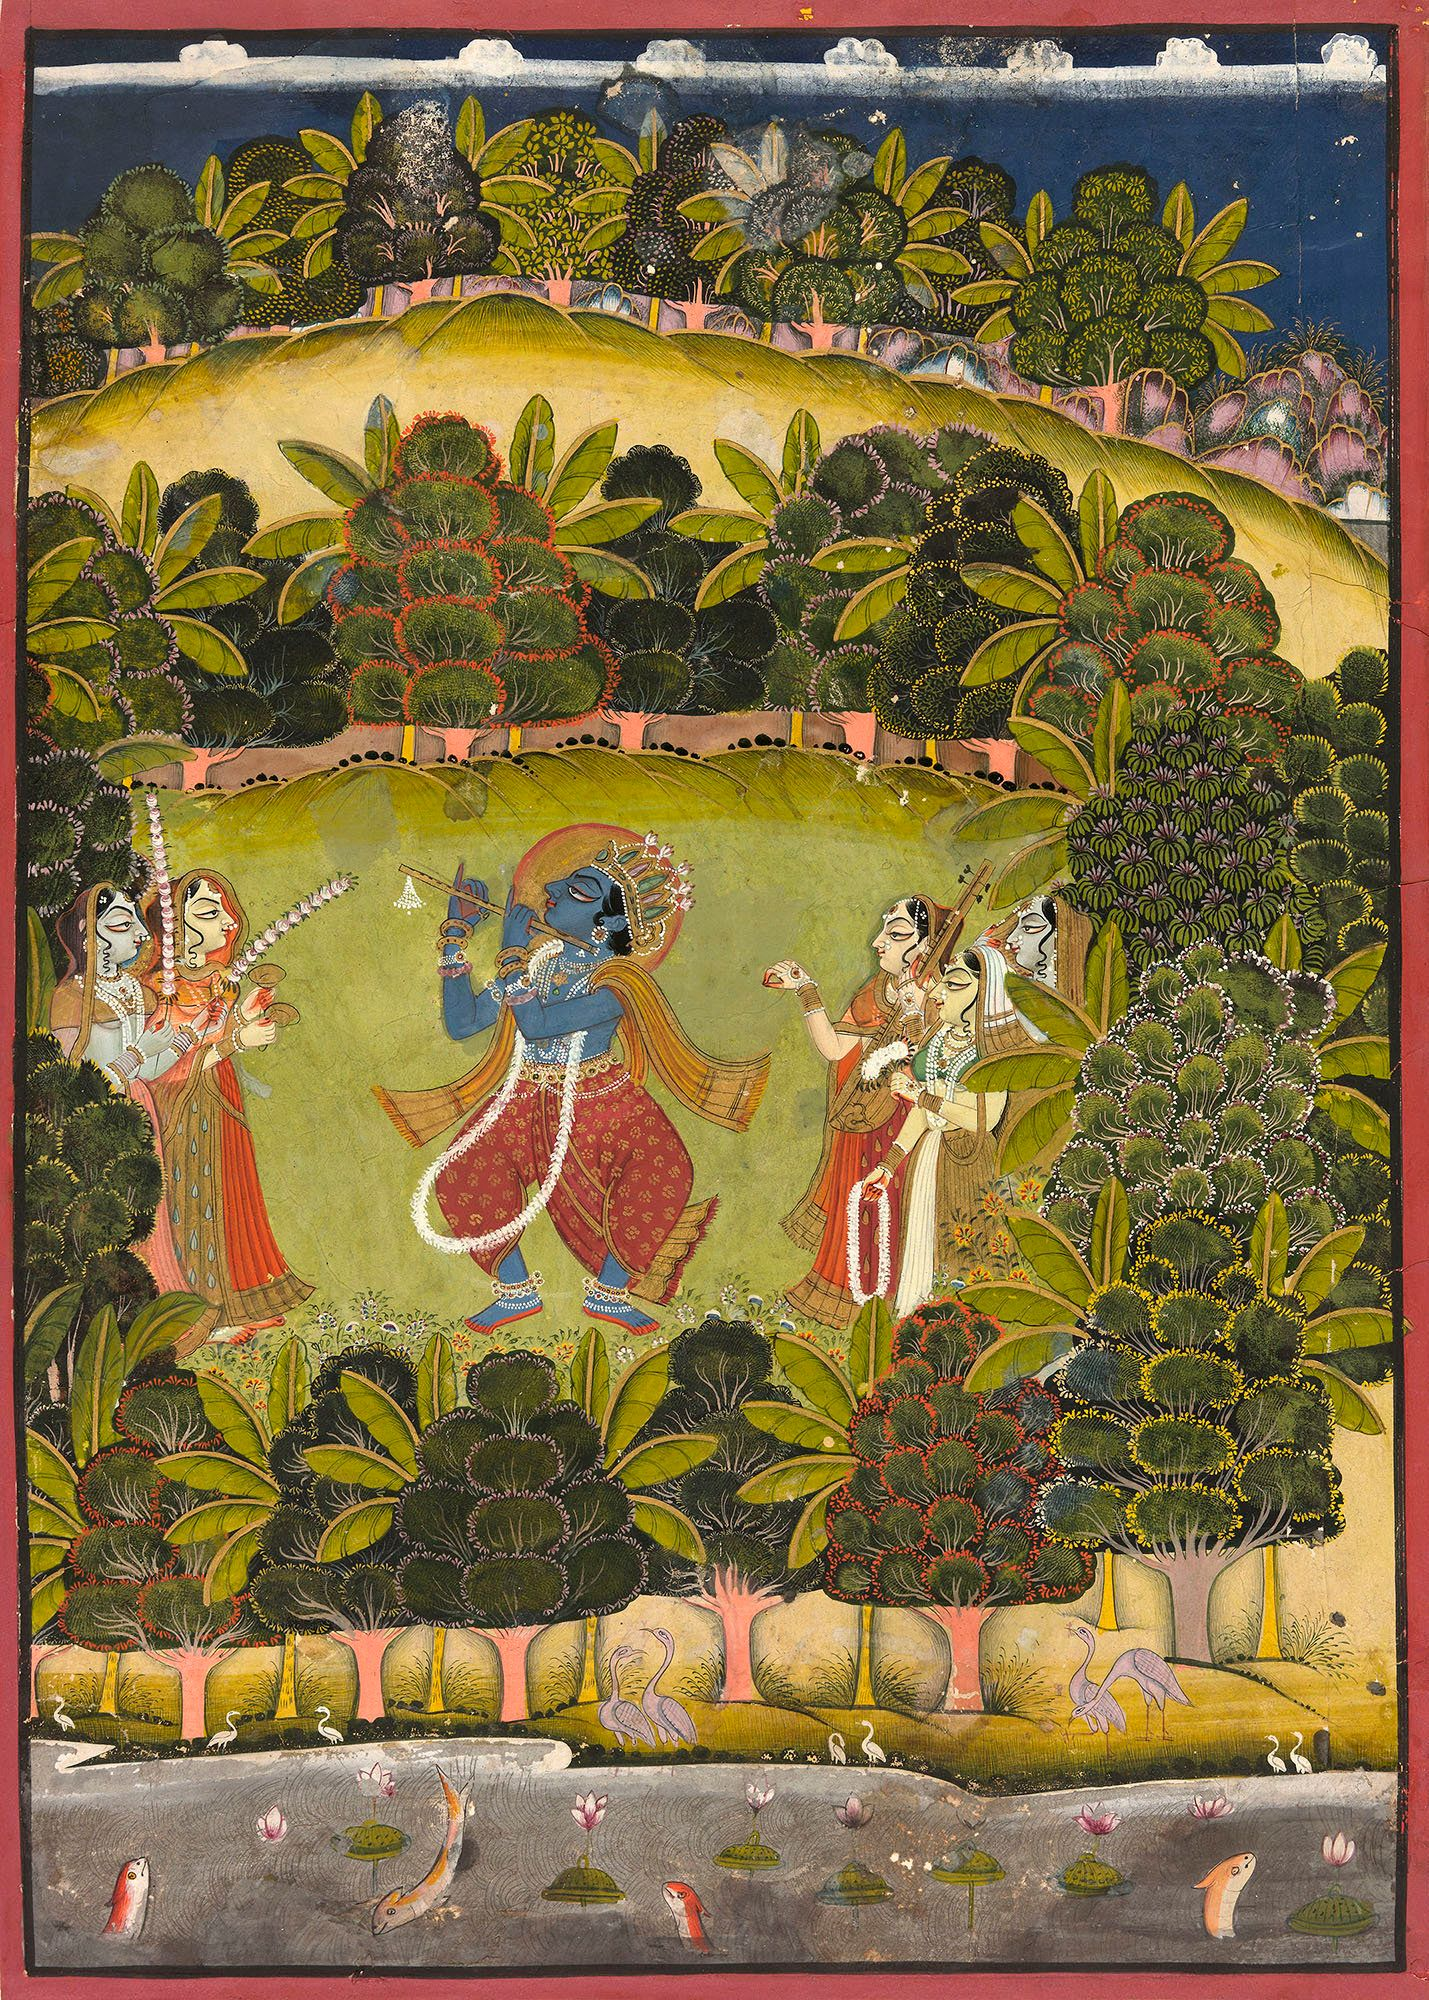 """""""In this large painting, Krishna joyfully presides at the center of a lush forest grove traversed by a stream in the fo"""